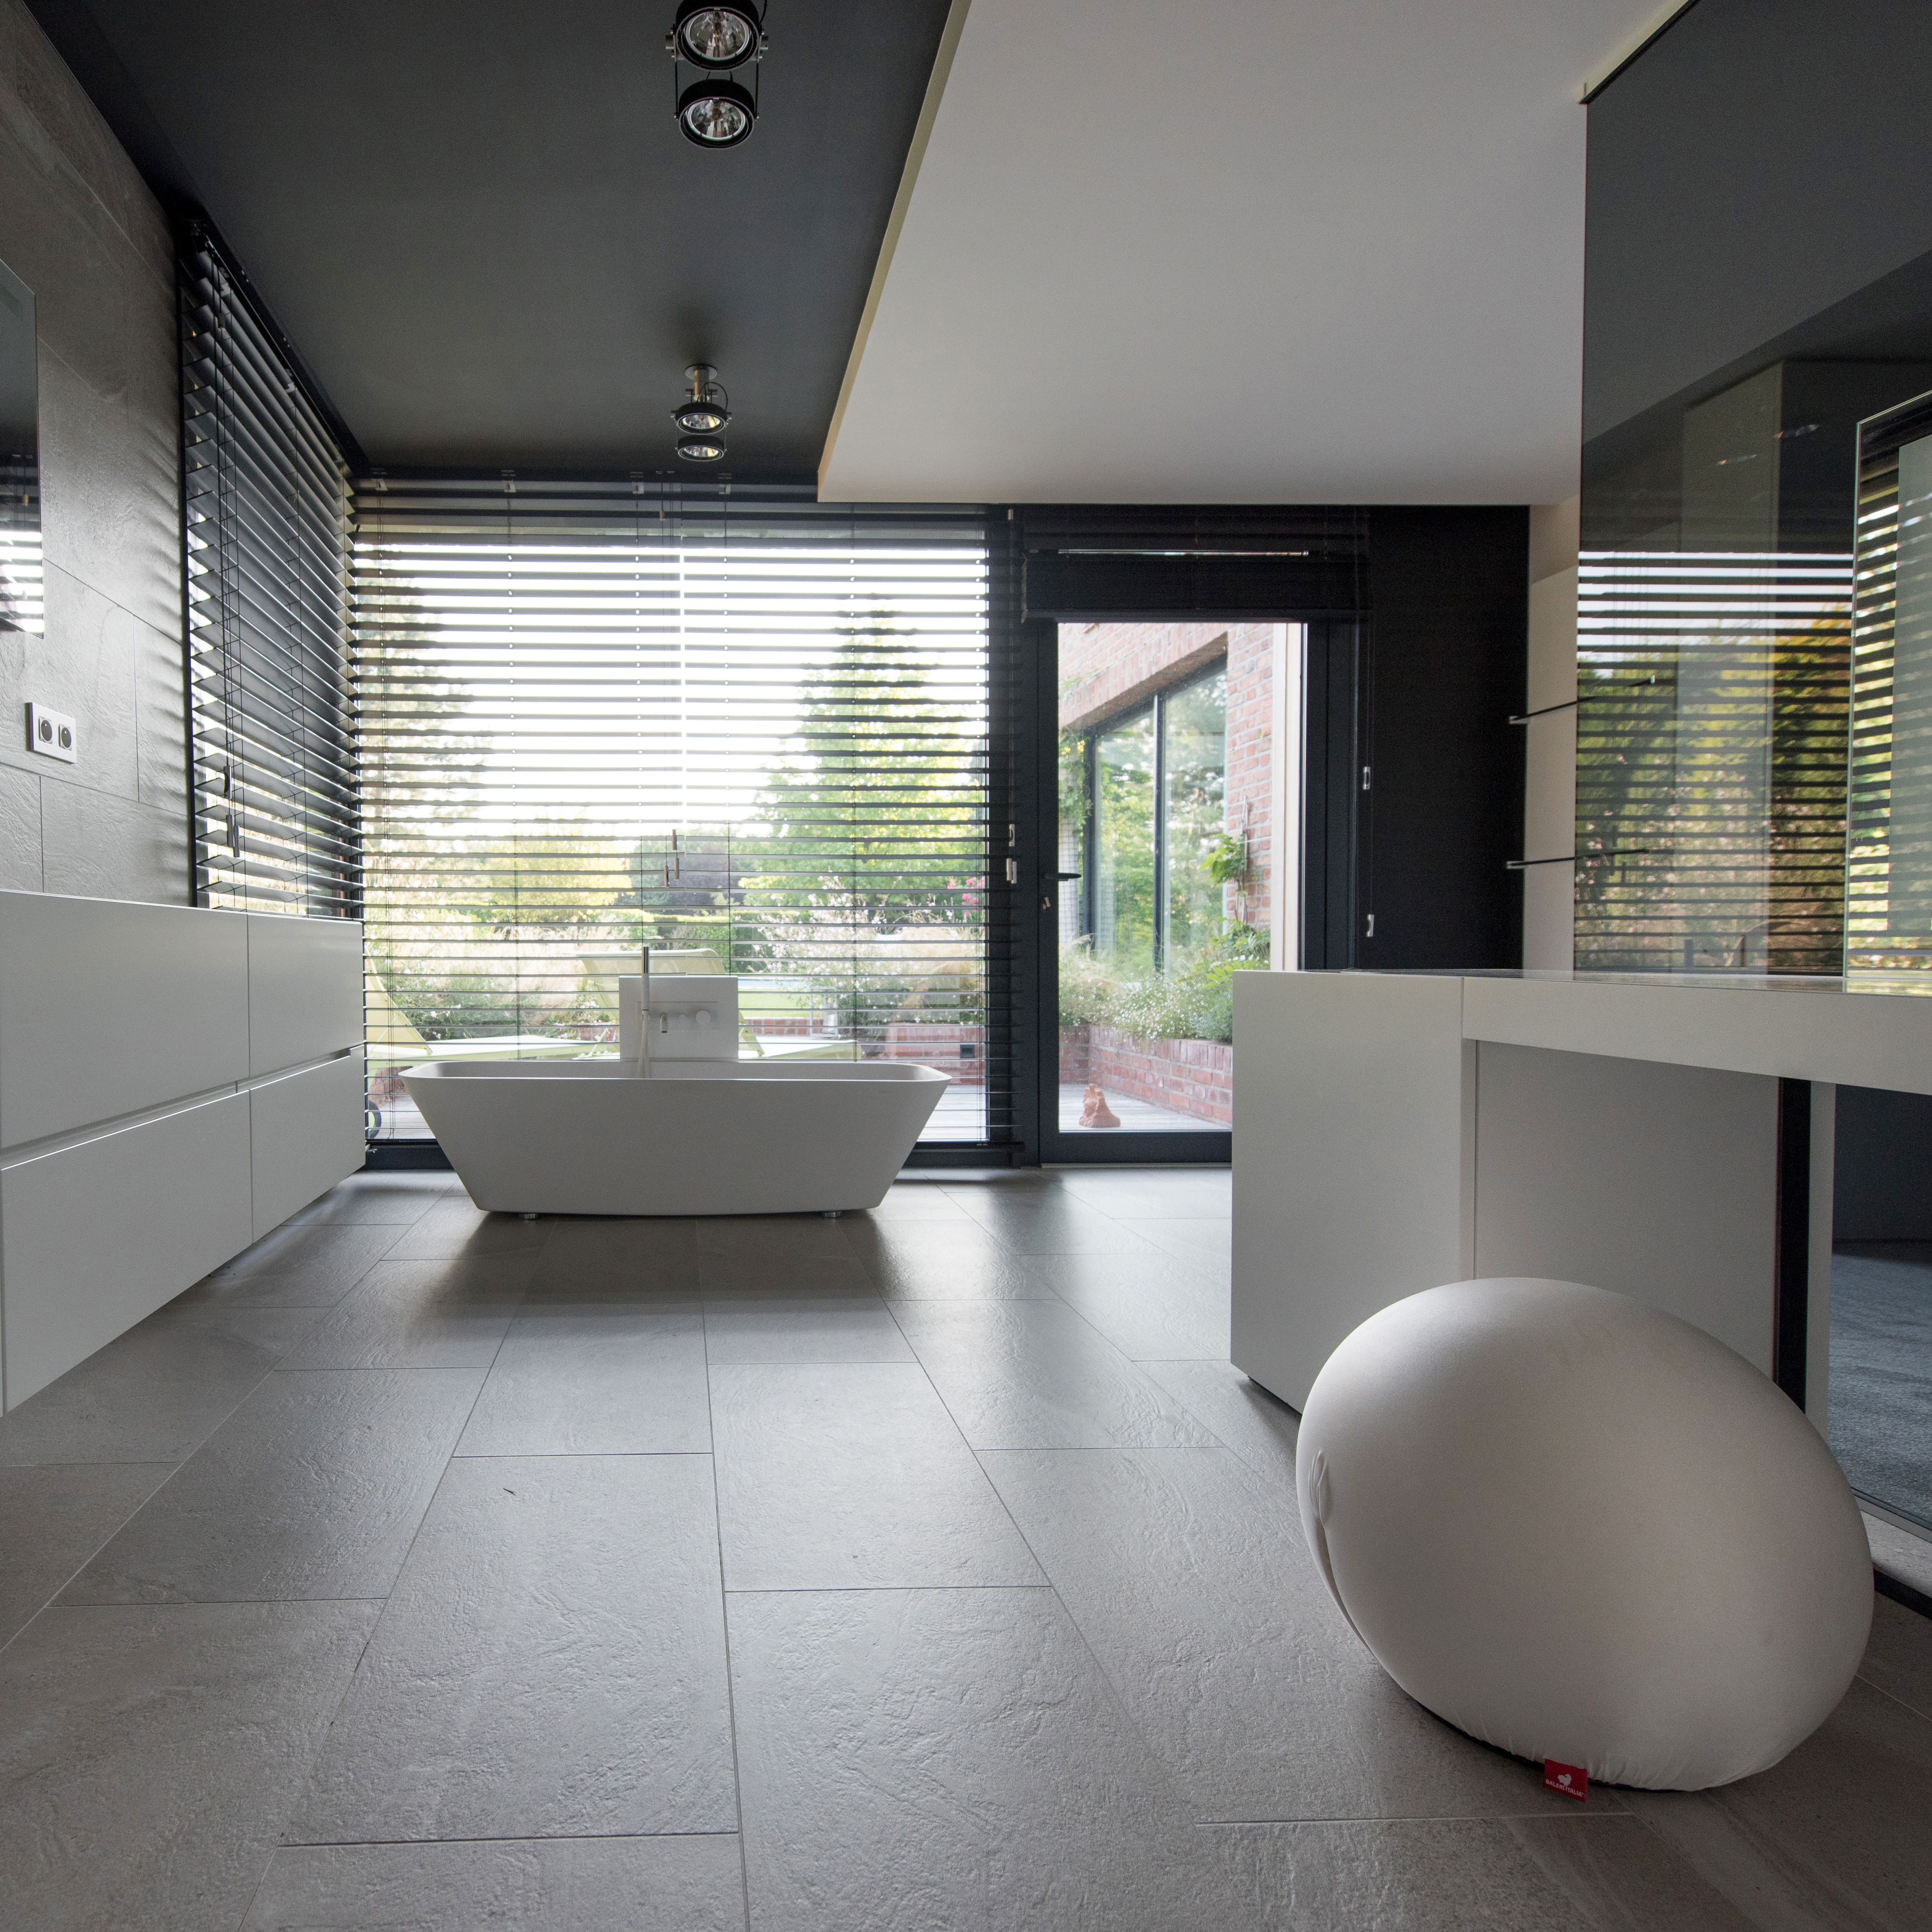 Maison Moderne / Contemporain / Décoration / Design / Salle De Bain / Suite  Parentale /